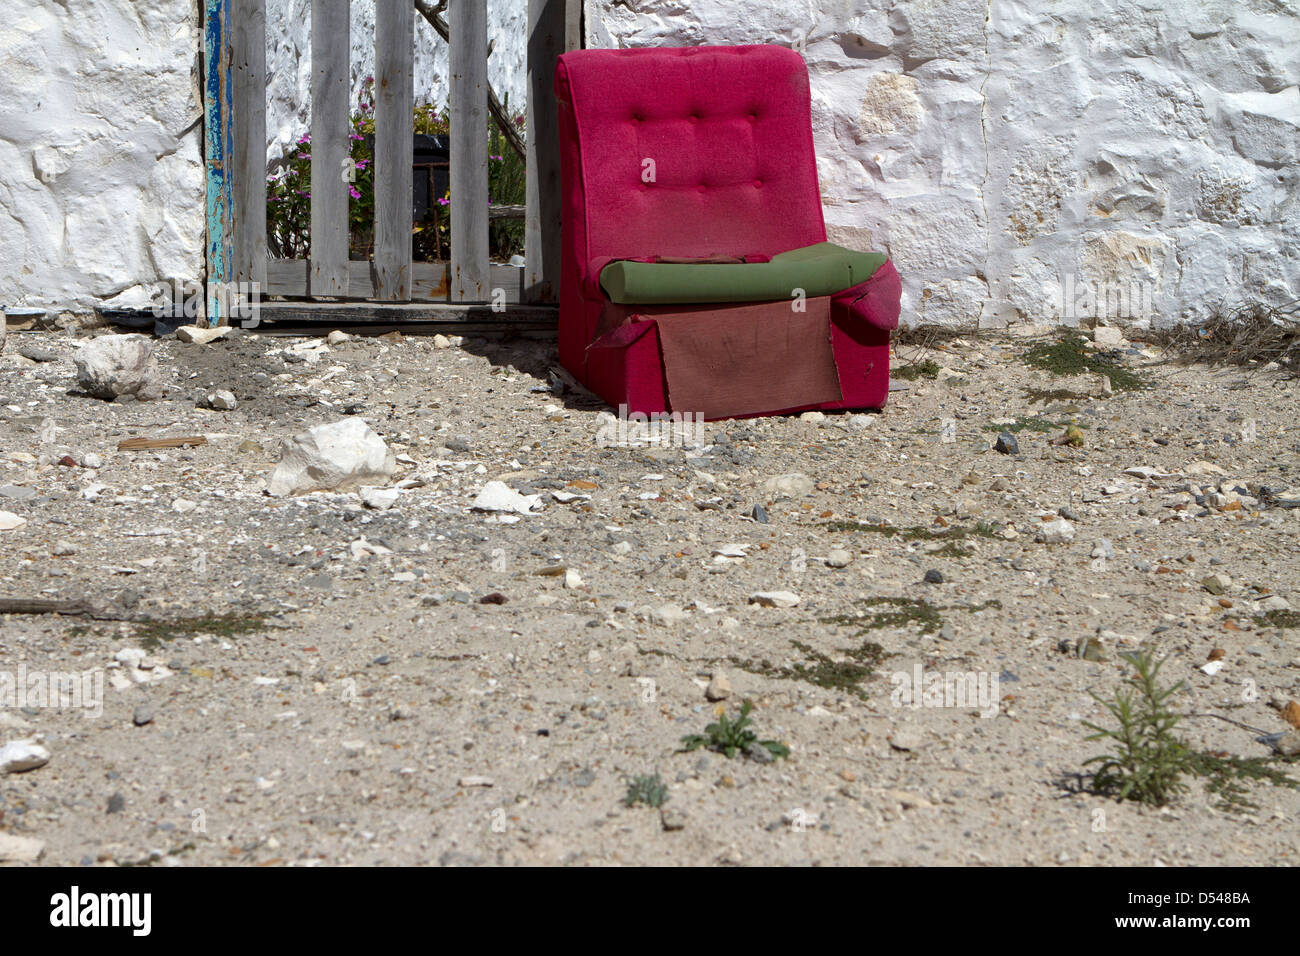 Old chair outside a house. - Stock Image